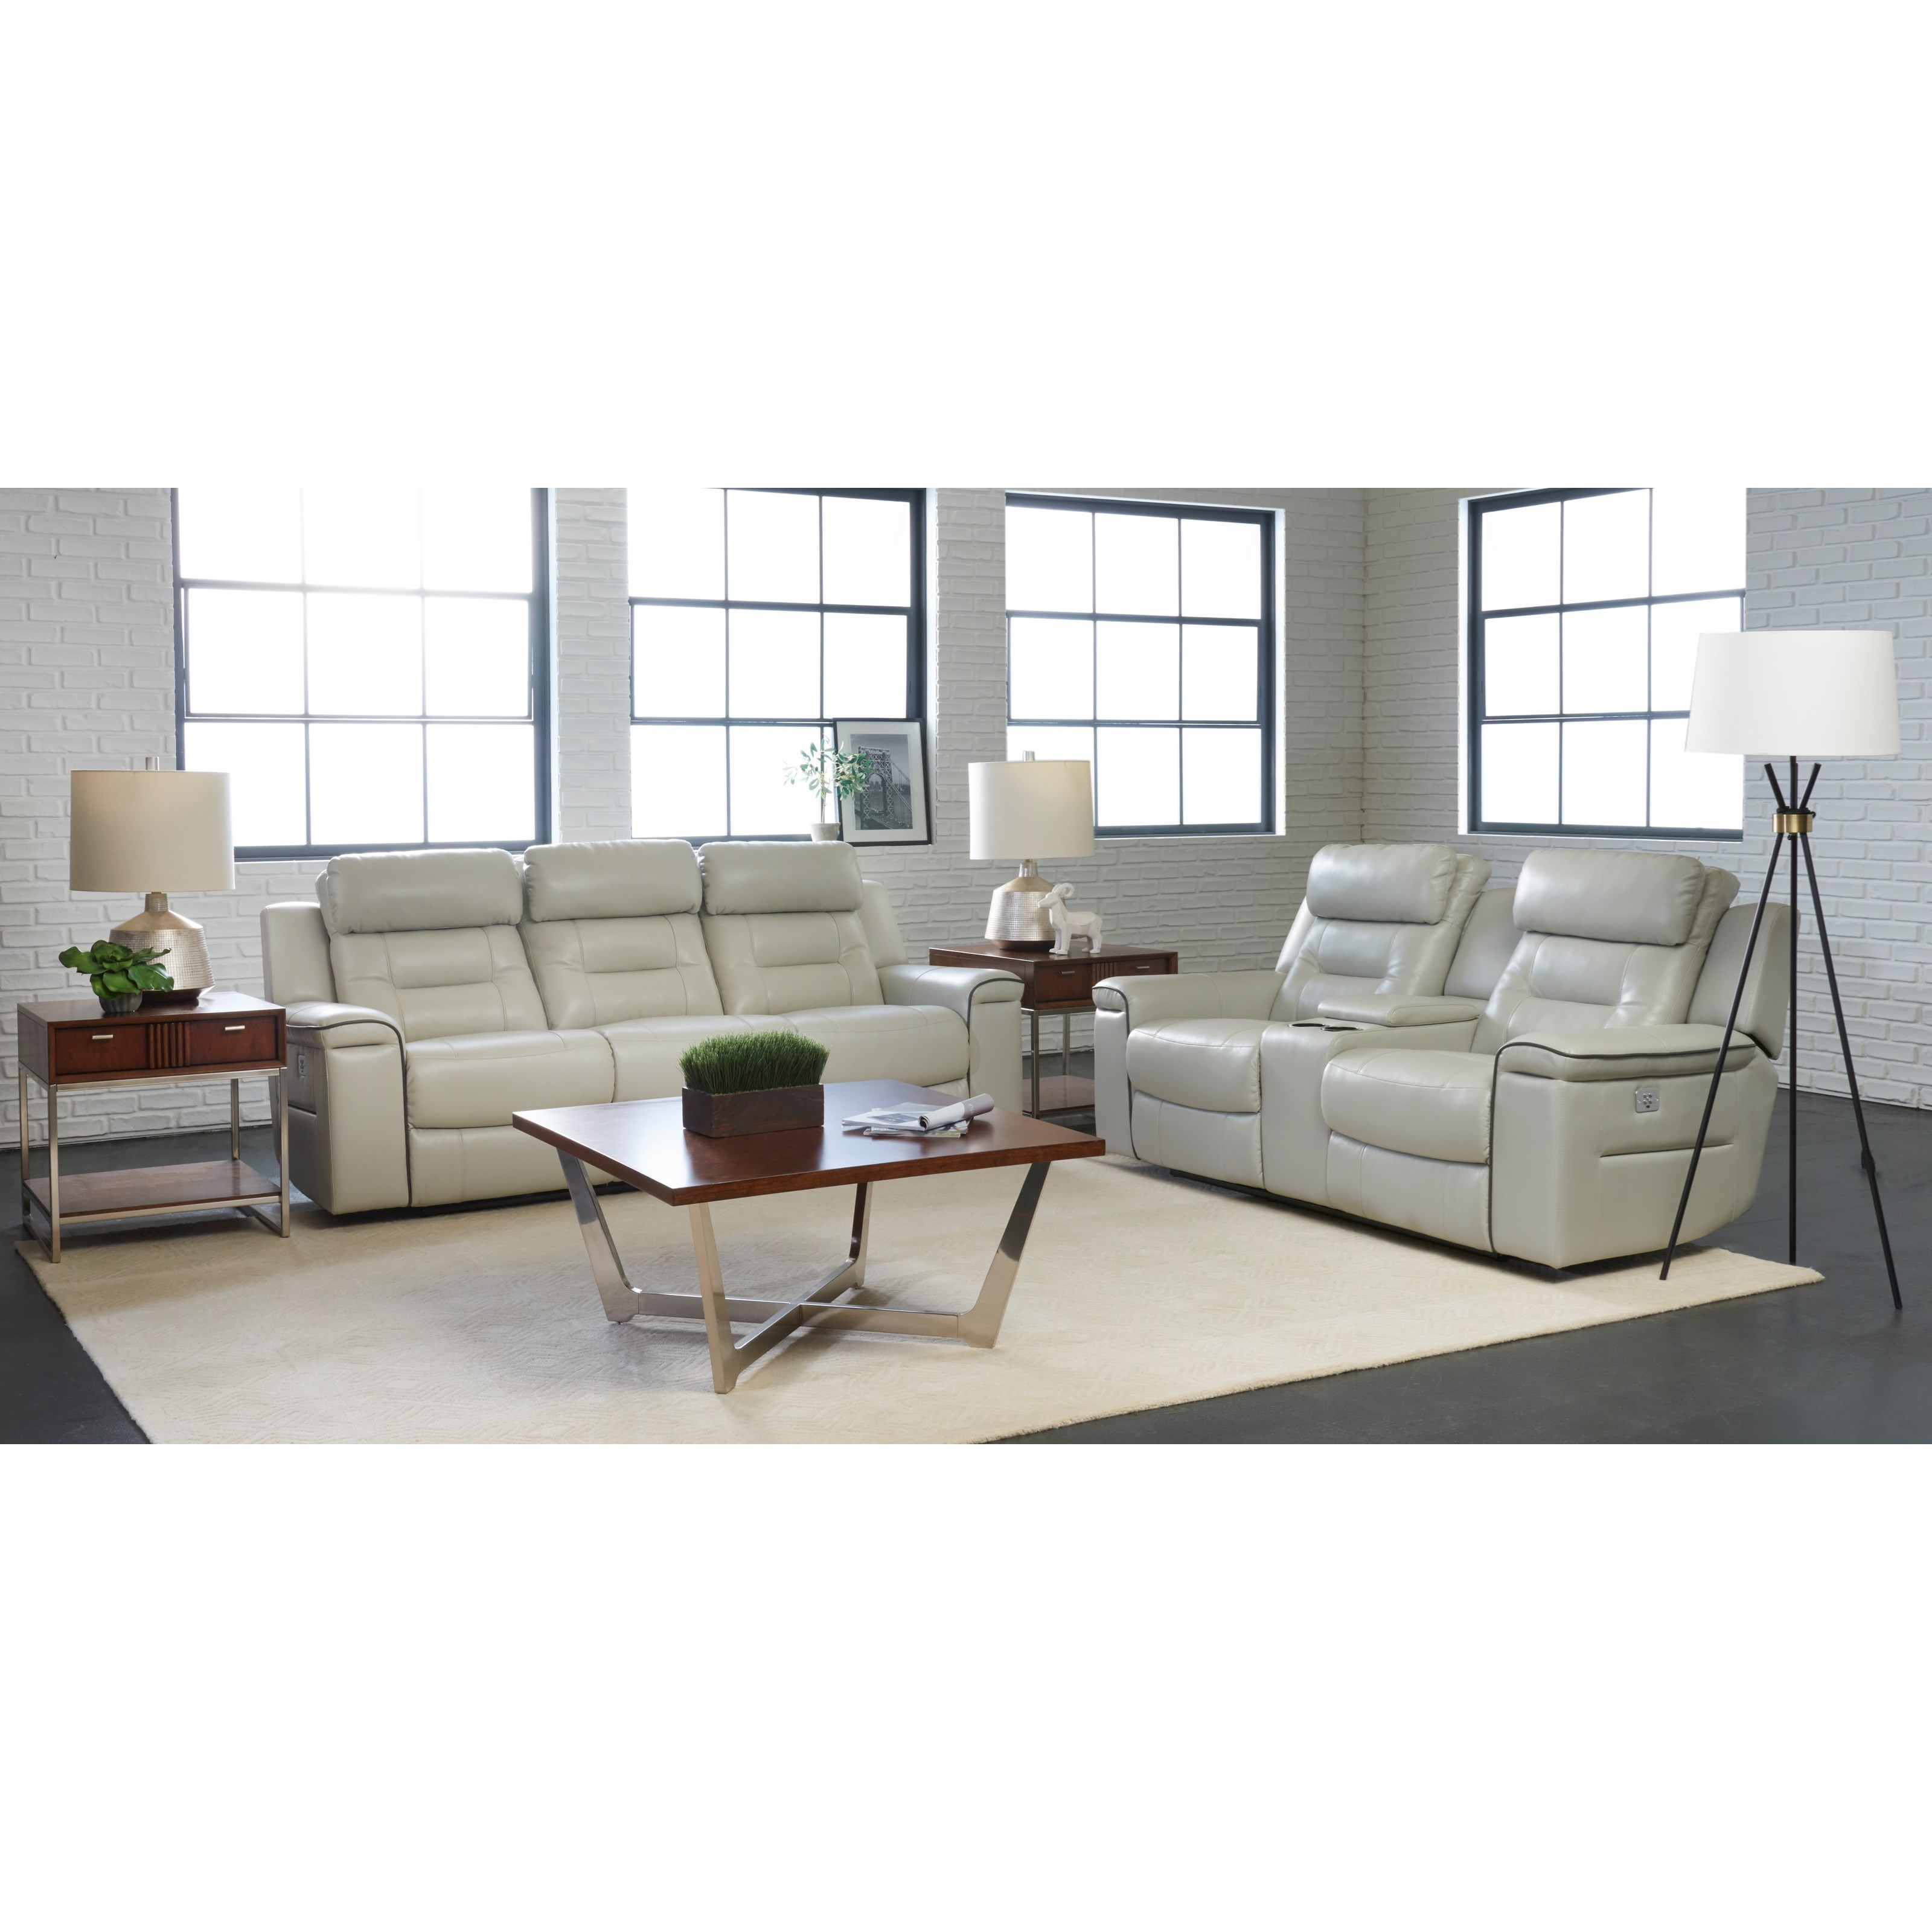 Islander Reclining Living Room Group by Klaussner International at Northeast Factory Direct